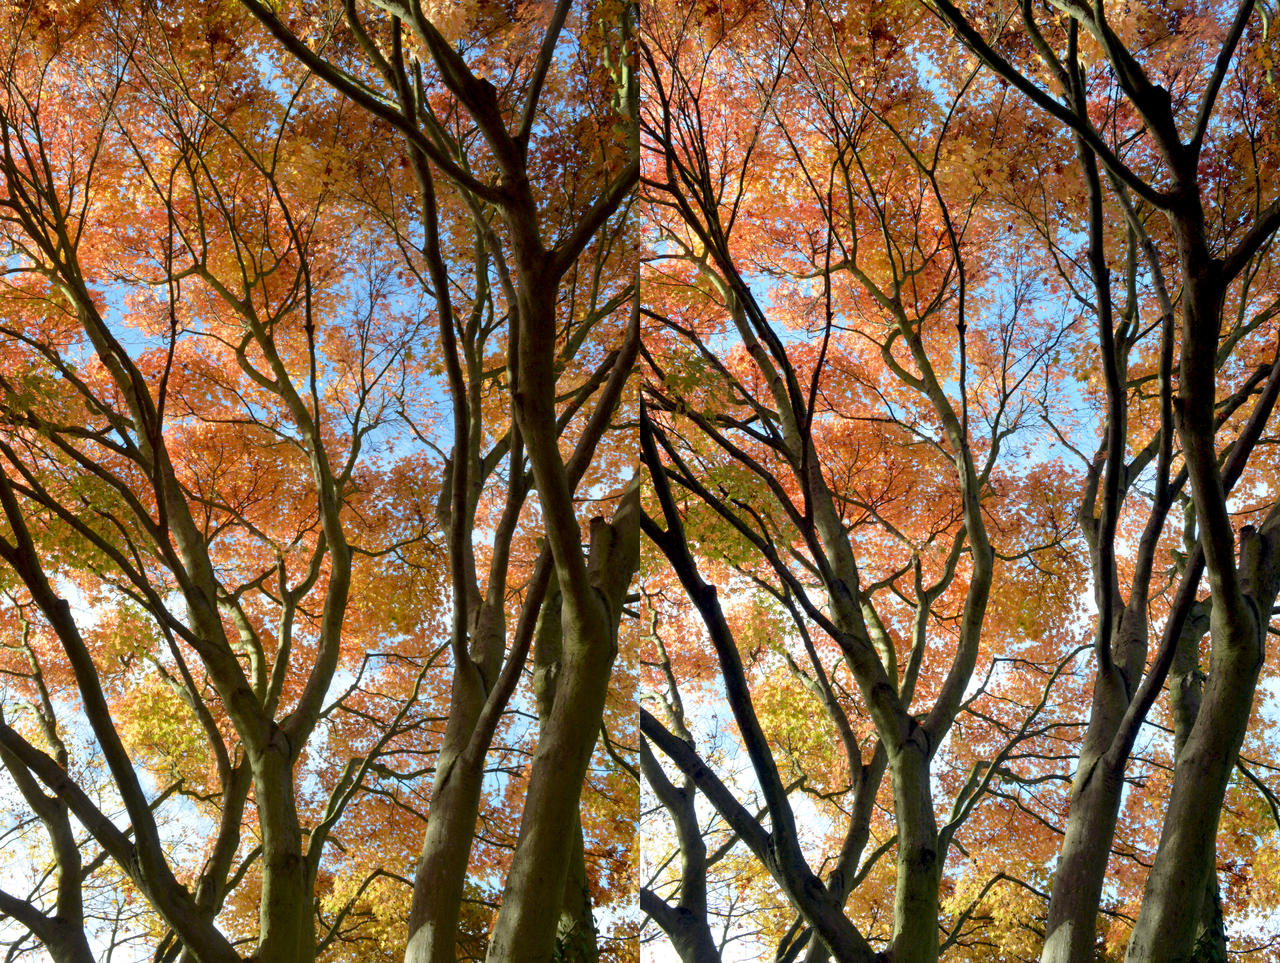 Small Leaved Ornamental Japanese Maple In Stereo by aegiandyad